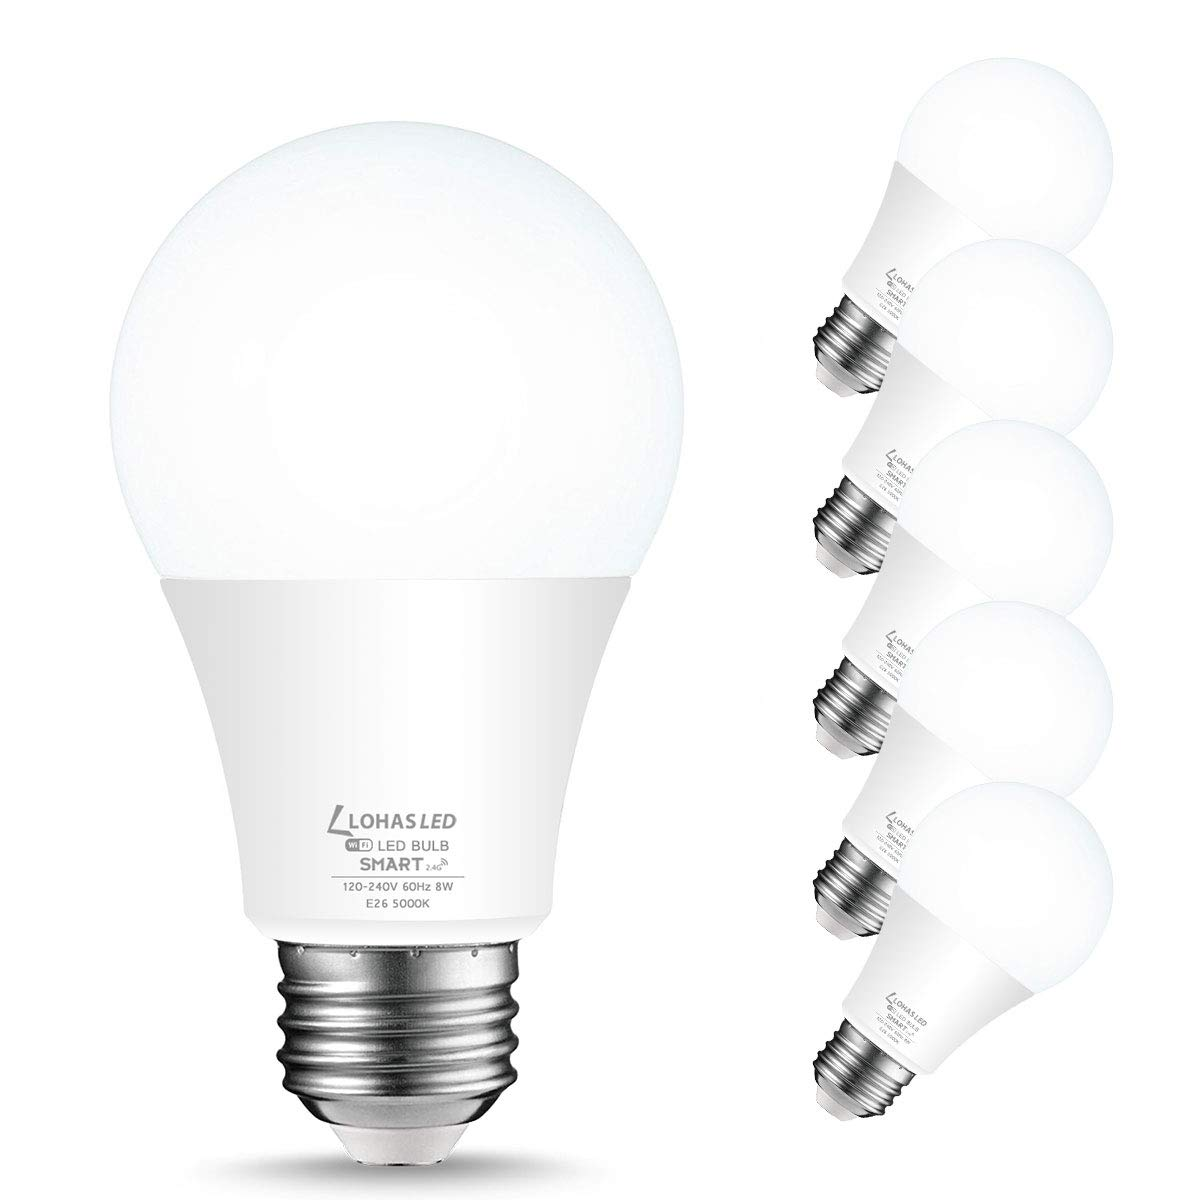 LOHAS Smart Light Bulb Dimmable LED Daylight Bulbs A19 E26, WiFi LED Bulbs, Compatible with Amazon Alexa, Google Home, Remote Control by Smartphone iOS & Android, 50W LED Light Bulb Equaivalent, 6Pack